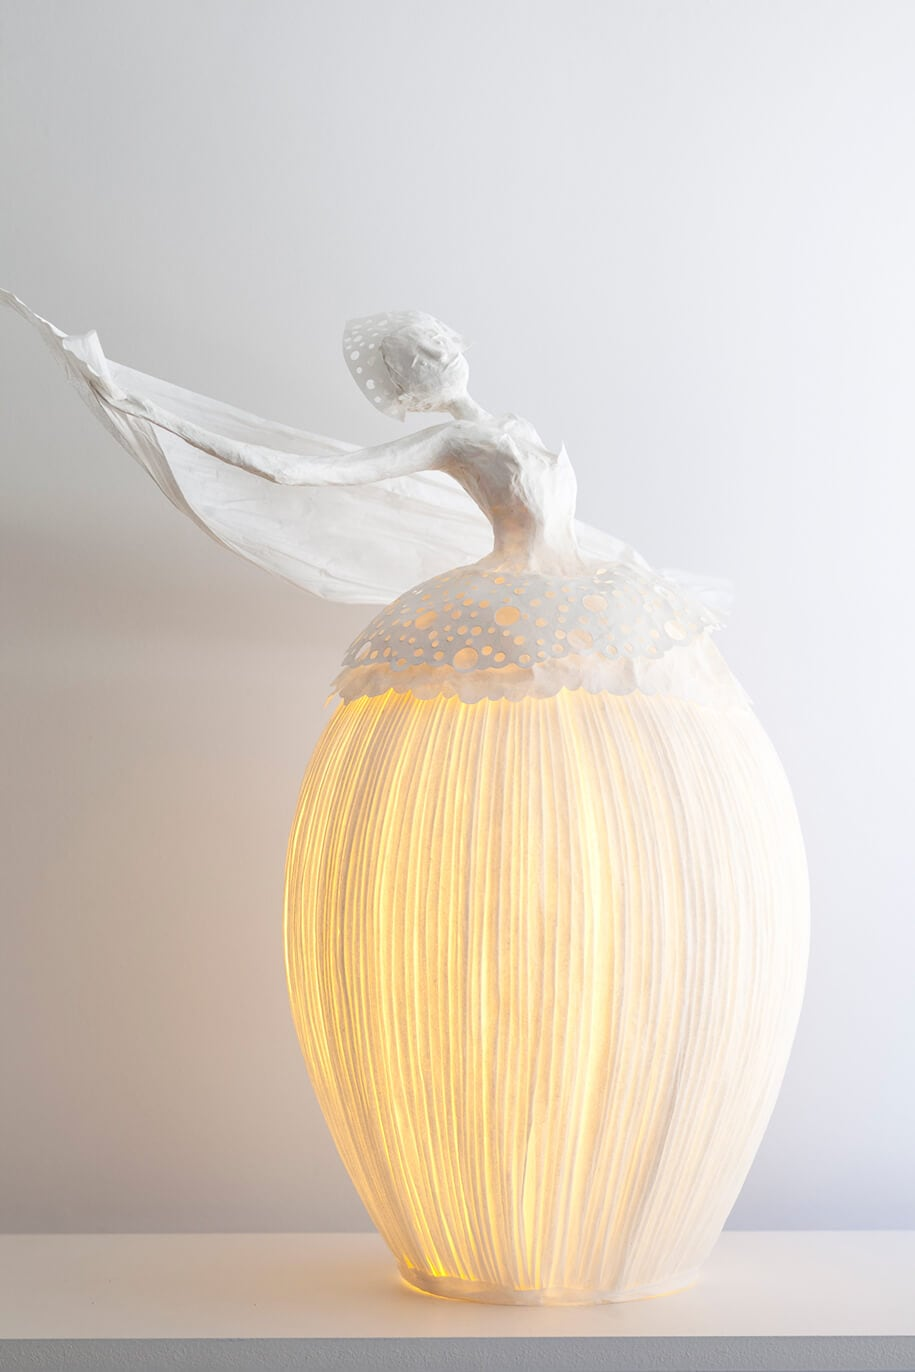 Beautiful Paper Lamp Sculptures Illuminate The Room With Style -sculpture, paper-art, lamp